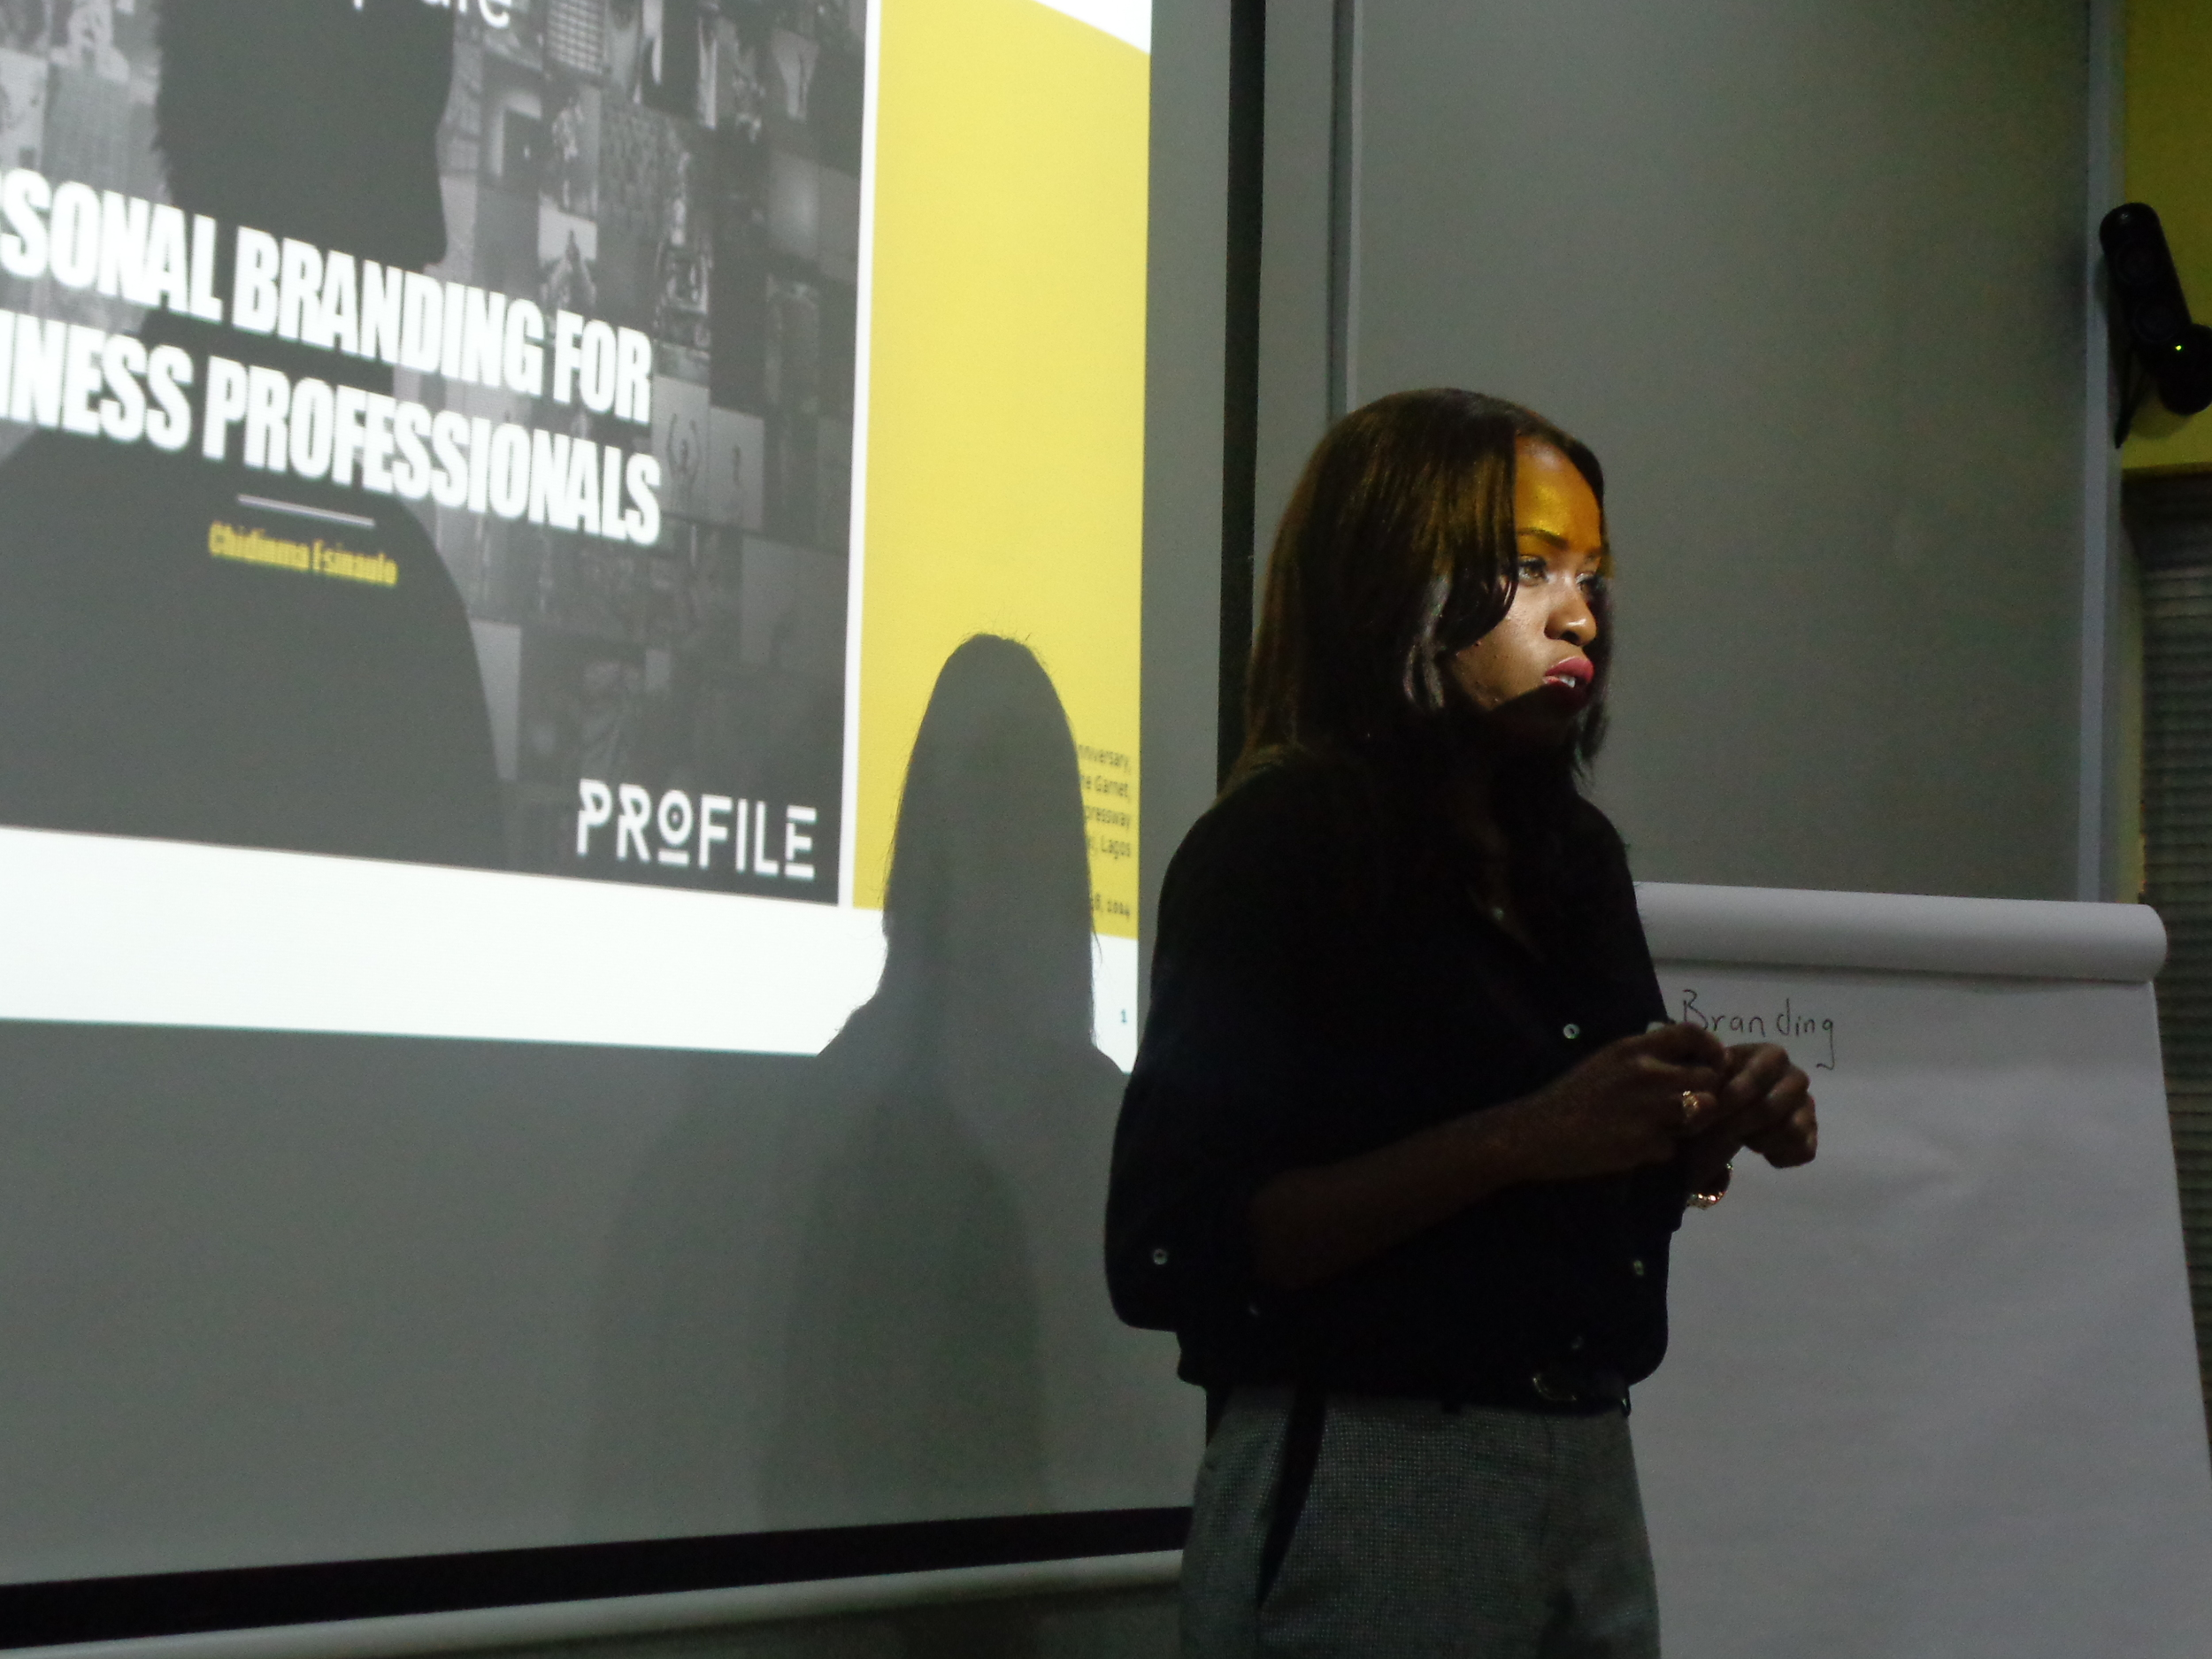 we also learn from Chidinma Esinaulo of Profile Image Consulting, whospokeonhow to make your personal brand work for your business.